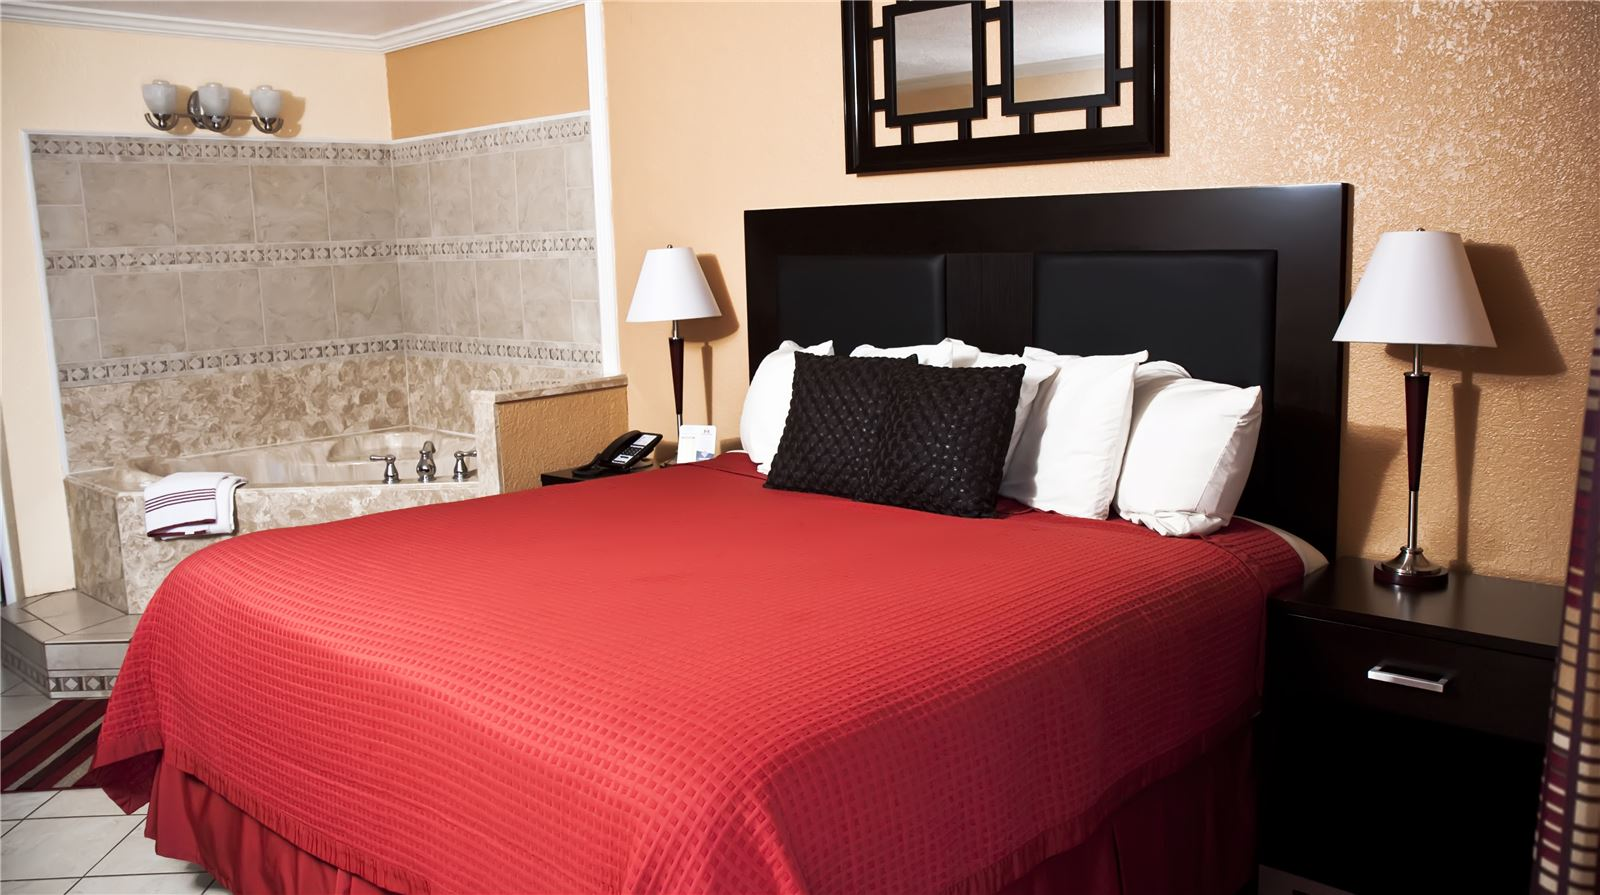 Hotels With Jacuzzi In Room In College Station Tx